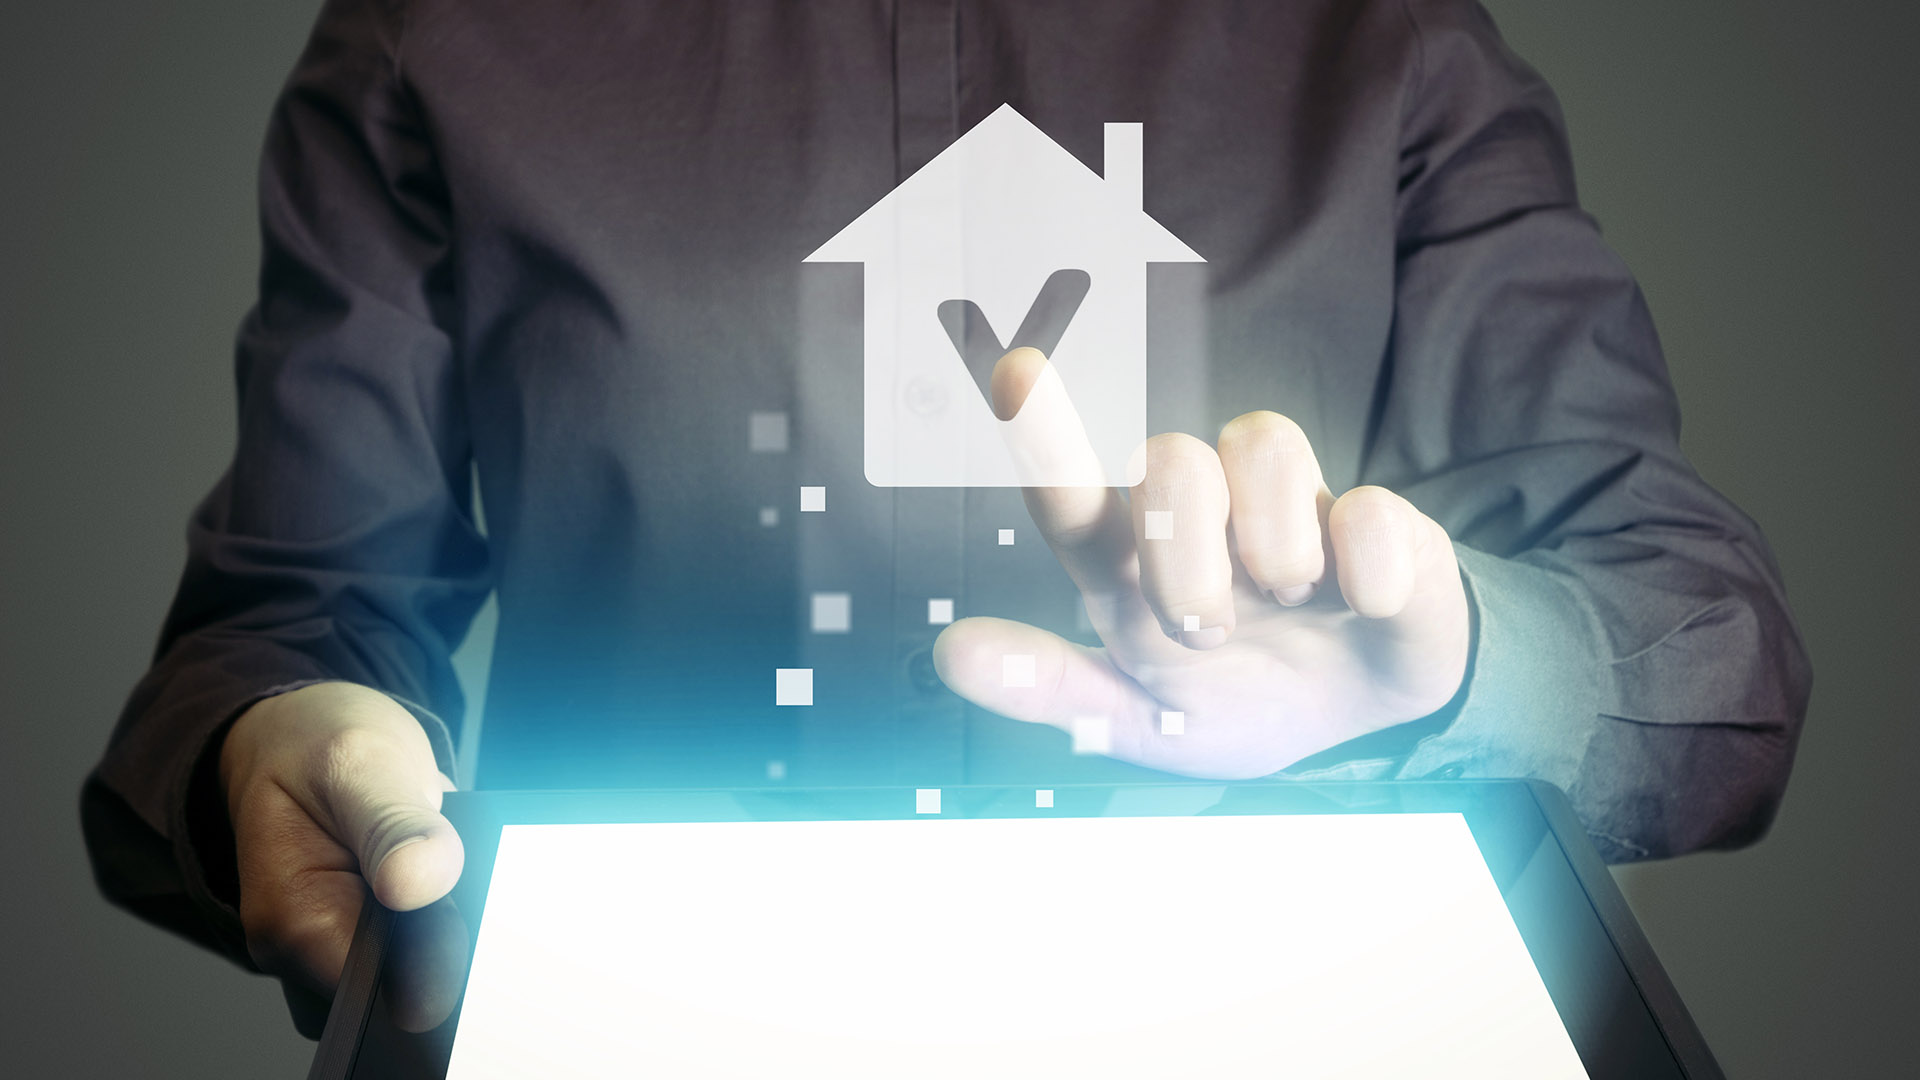 Housing Finance Industry should come up with niche products